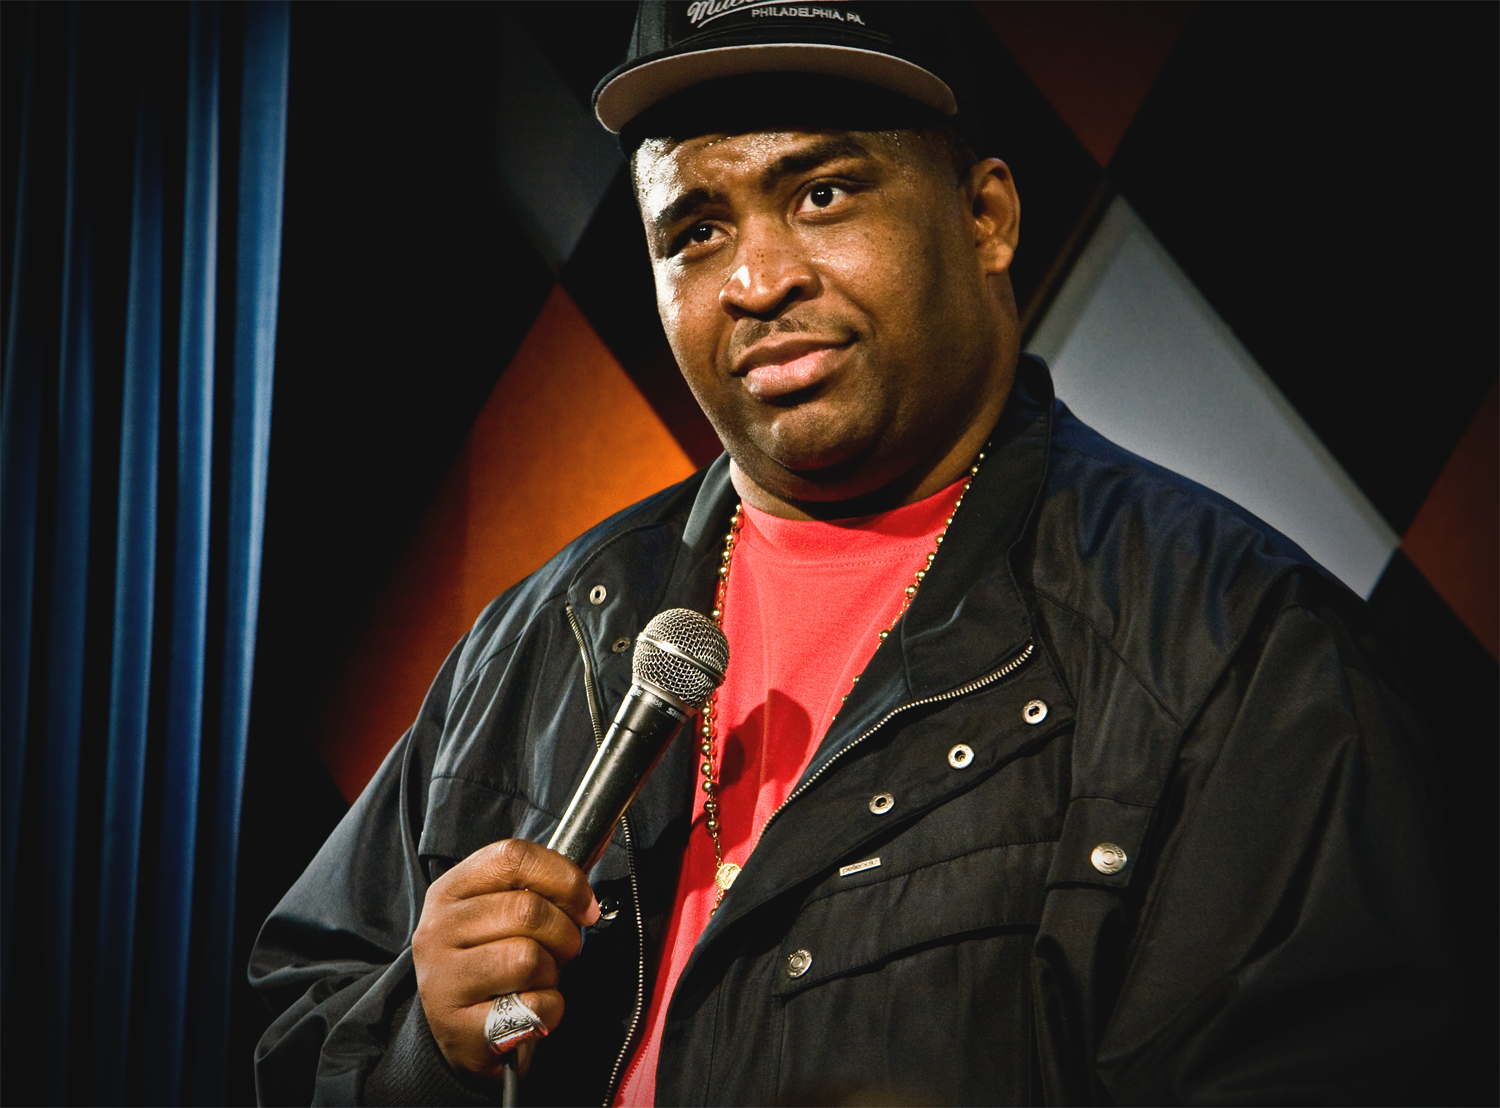 PatriceOneal -